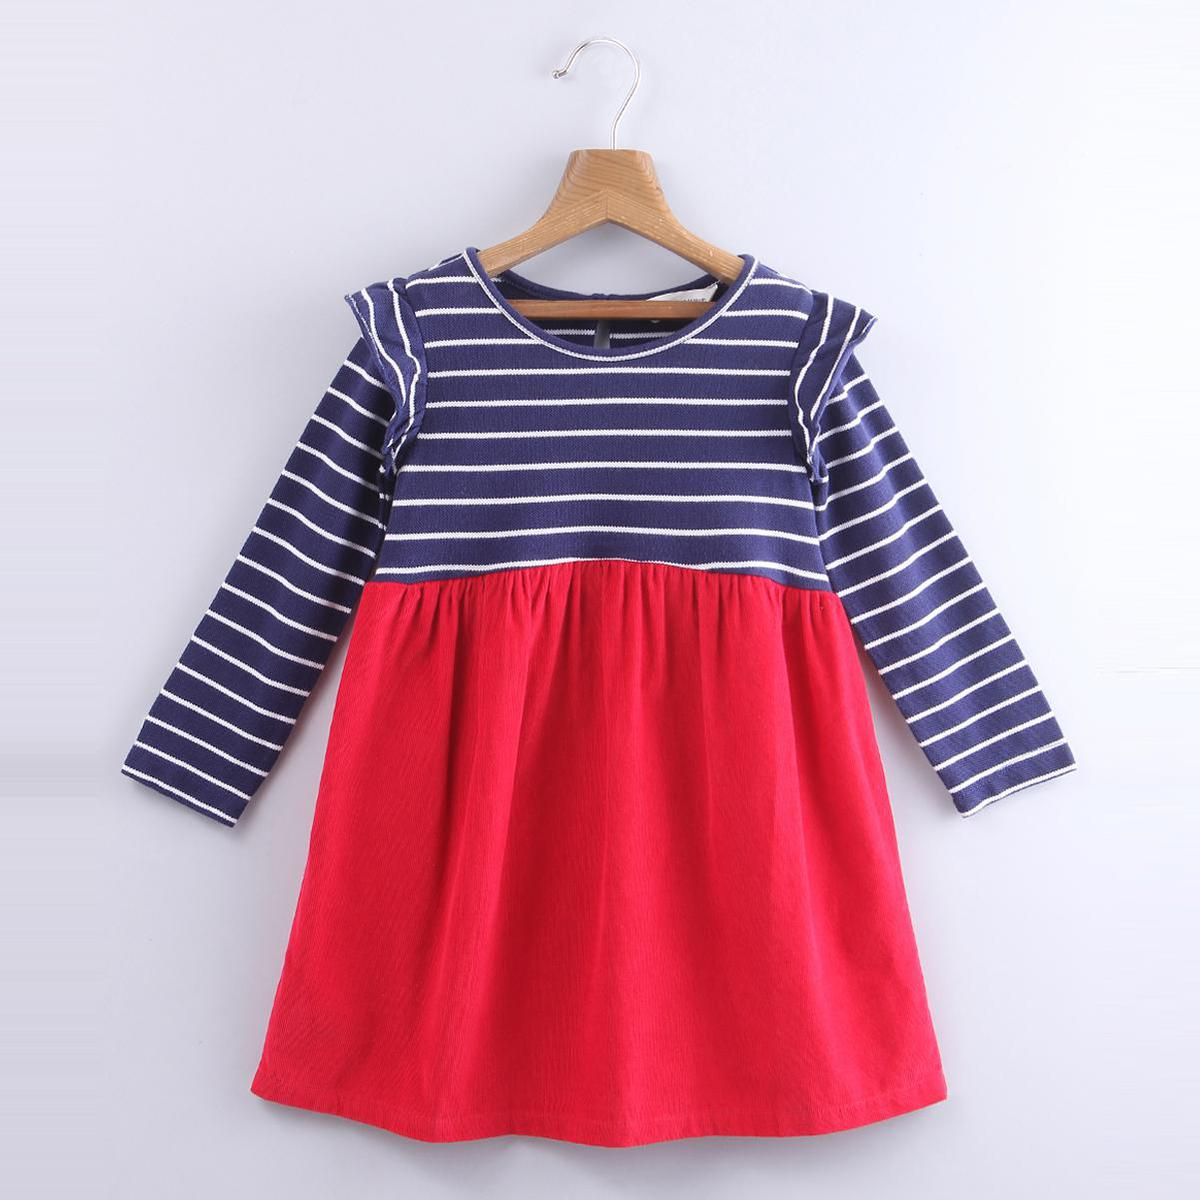 Beebay - Red Colored Stripe Mix-media Cotton Dress For Infants Girls